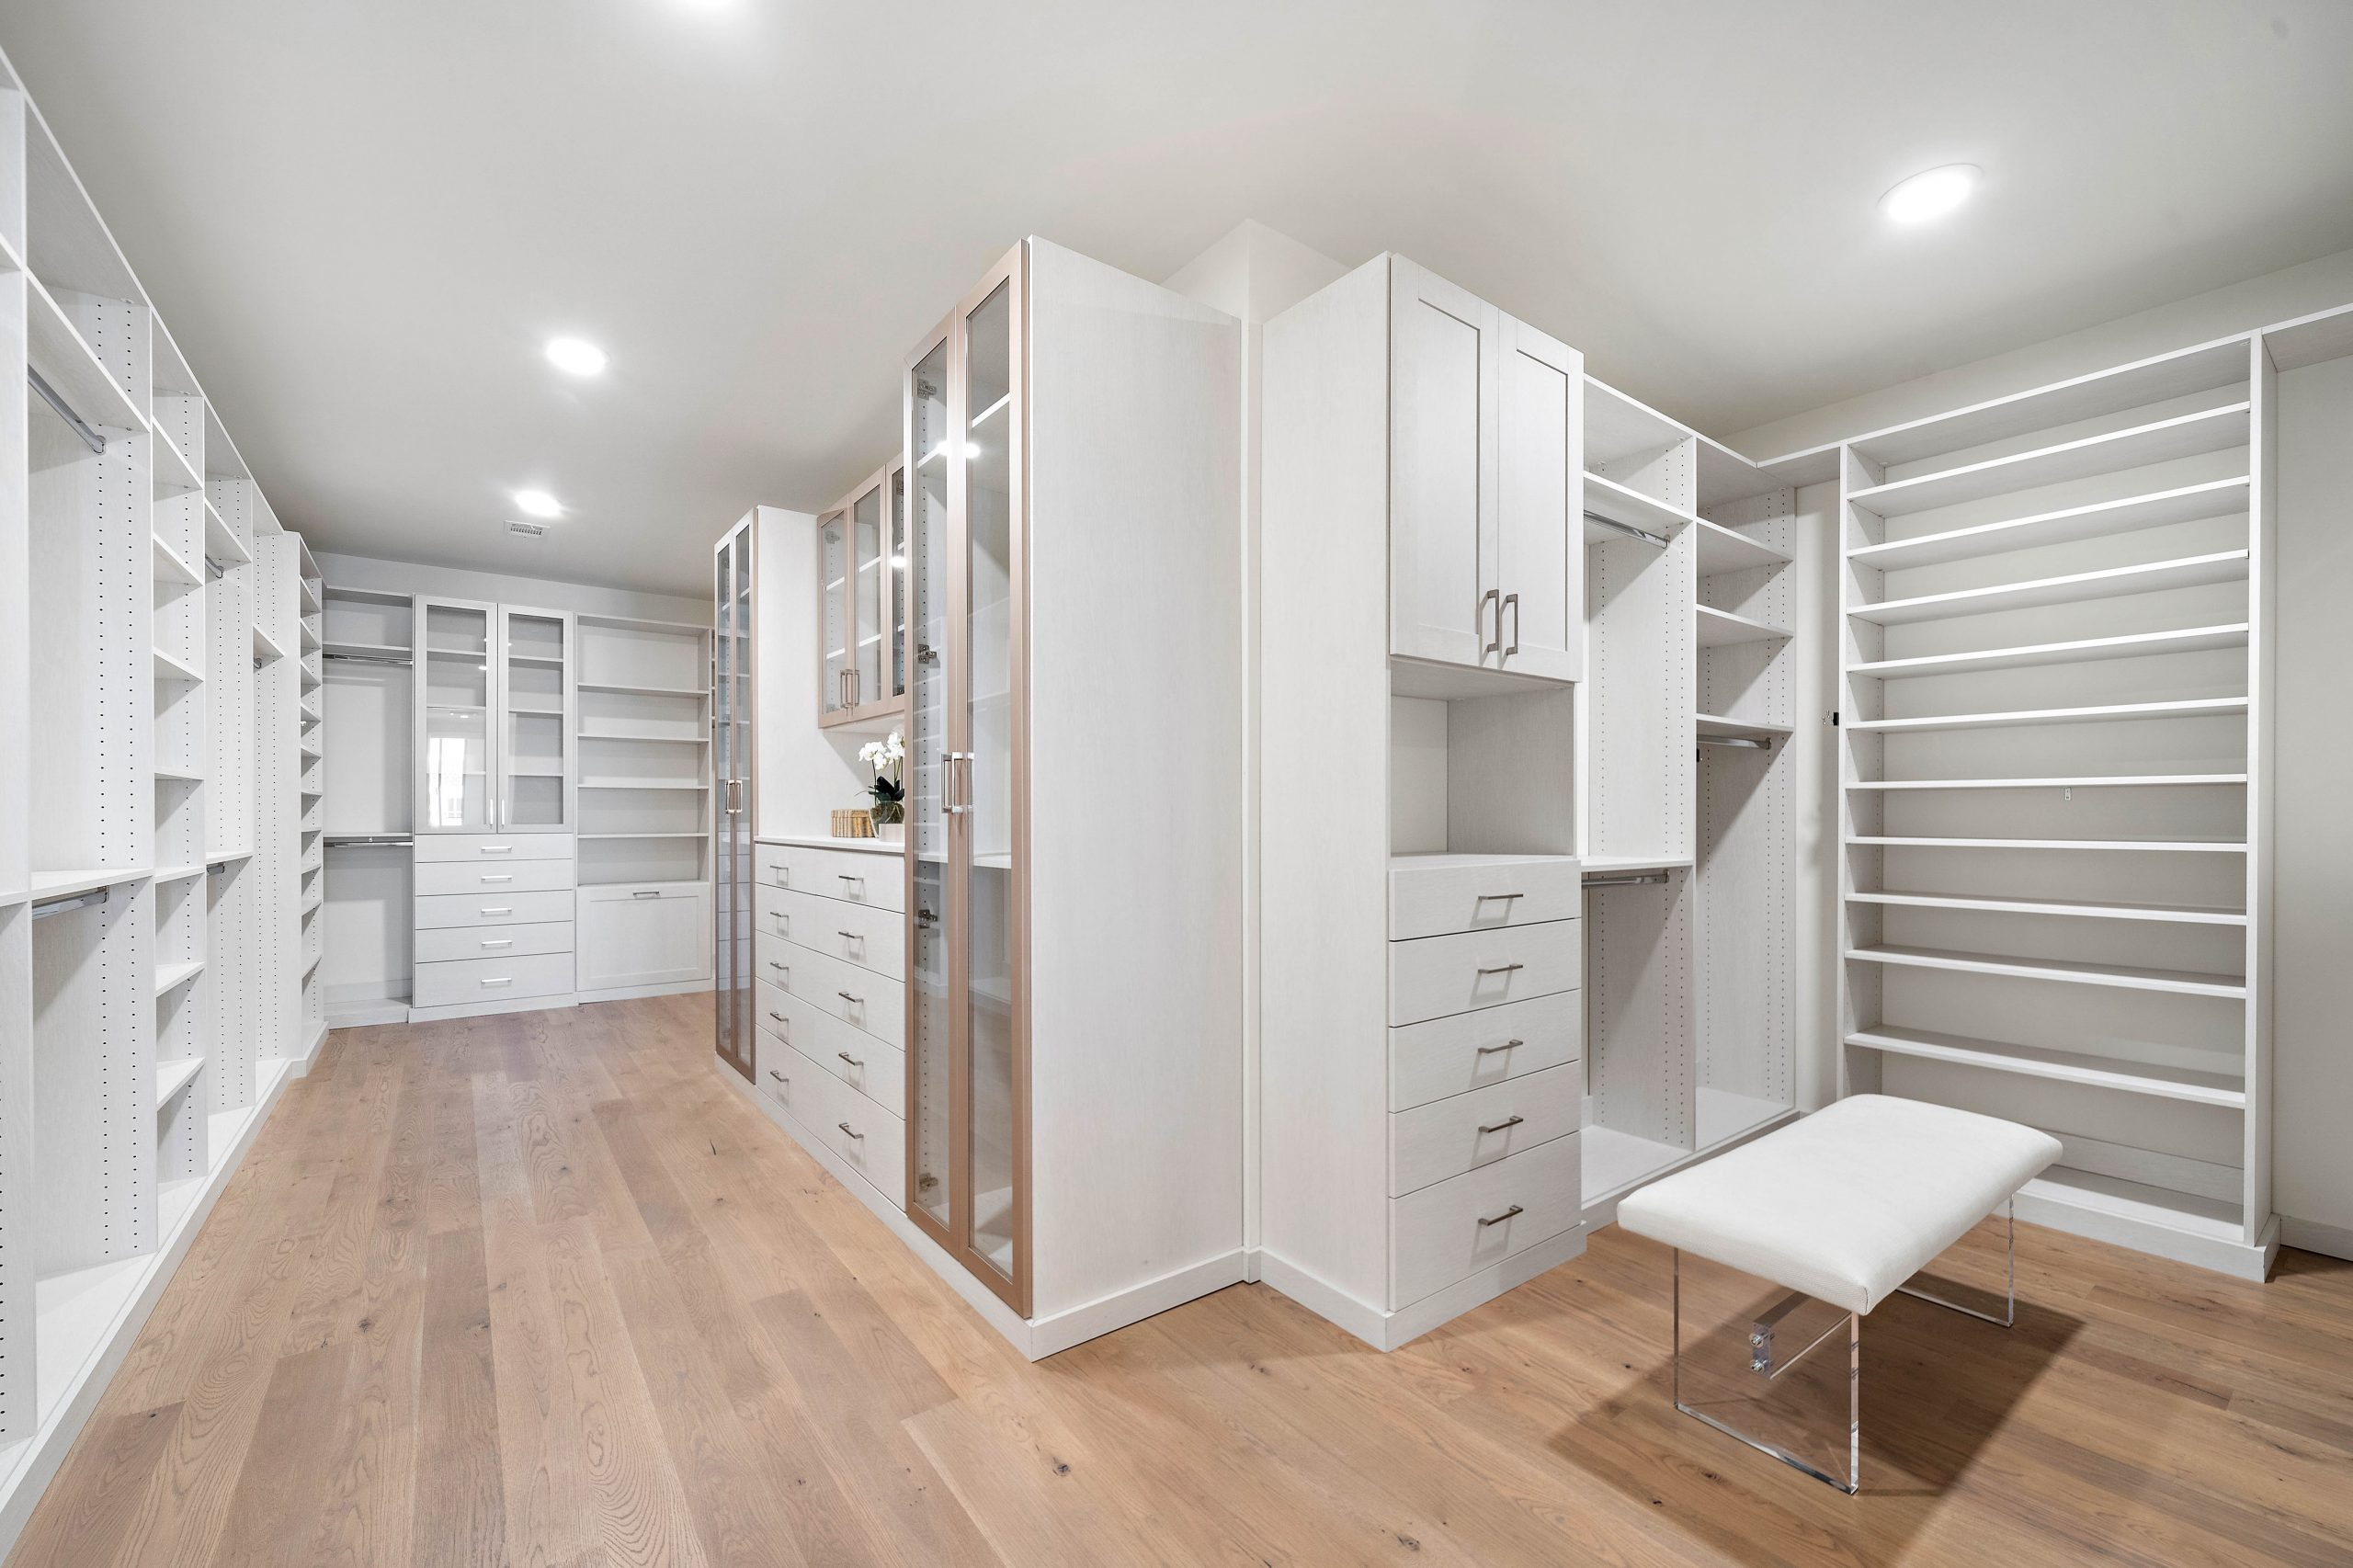 SpaceManager custom closets